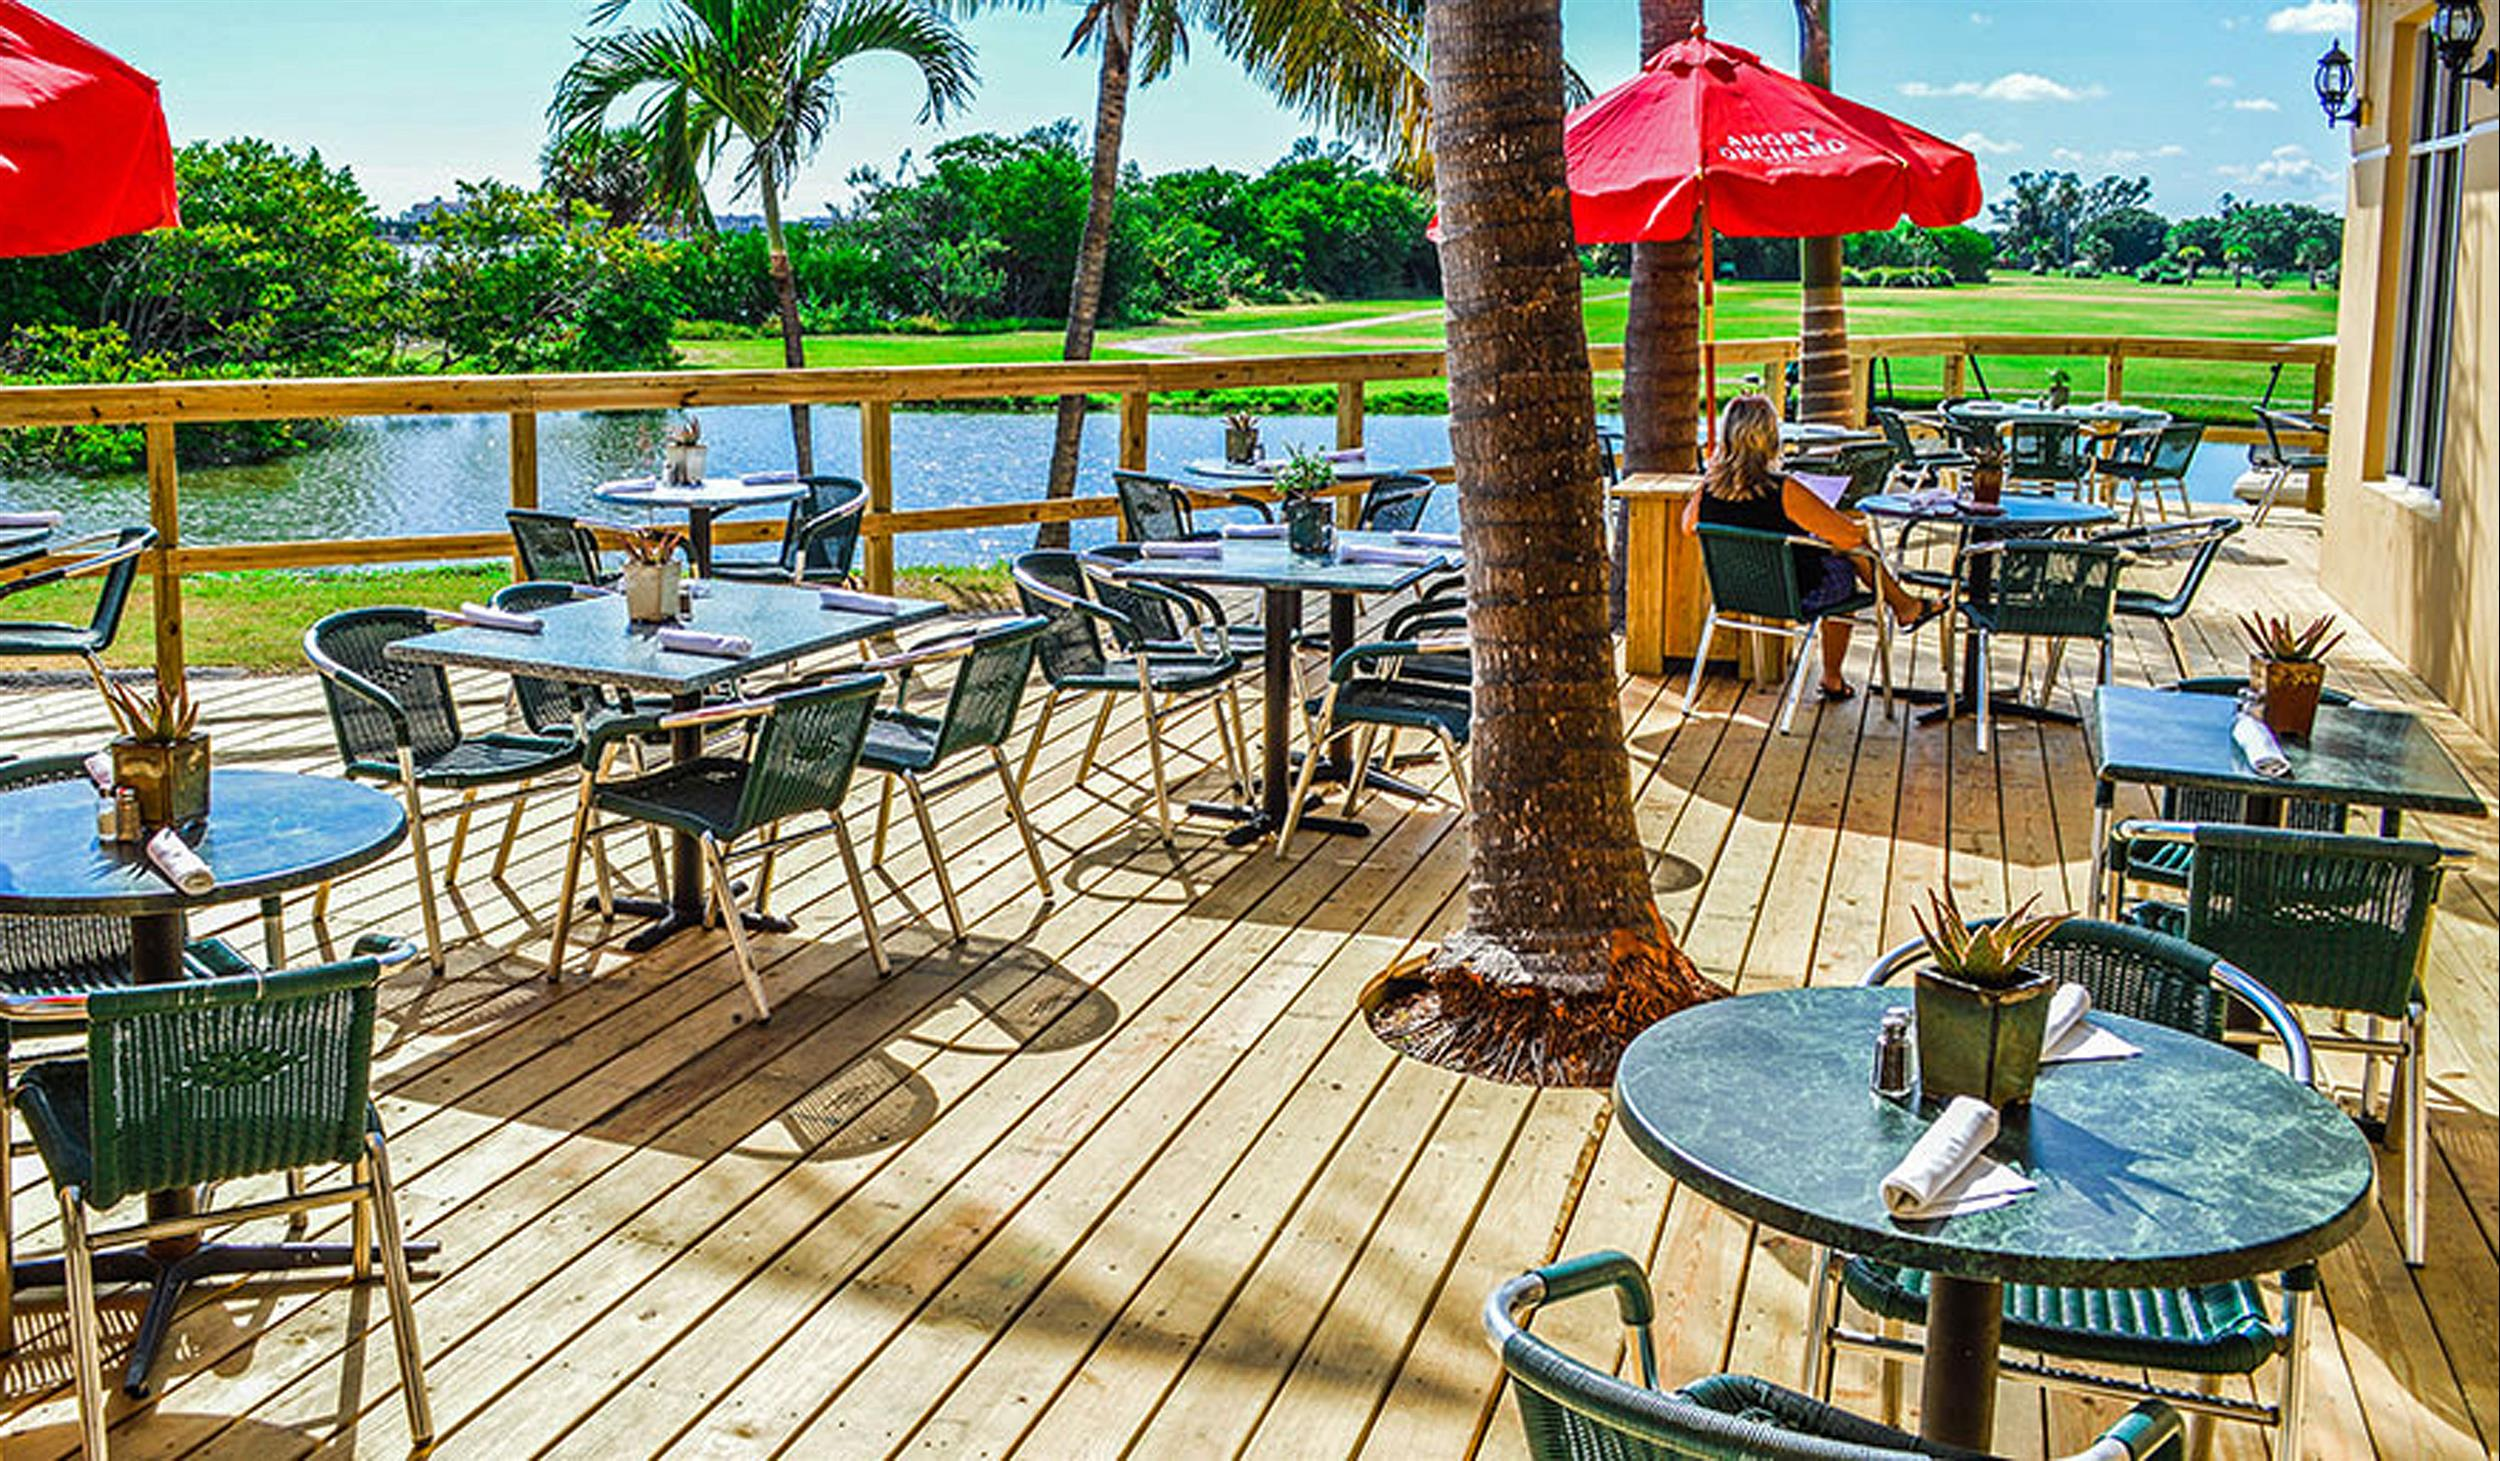 The Beach Club Lake Worth